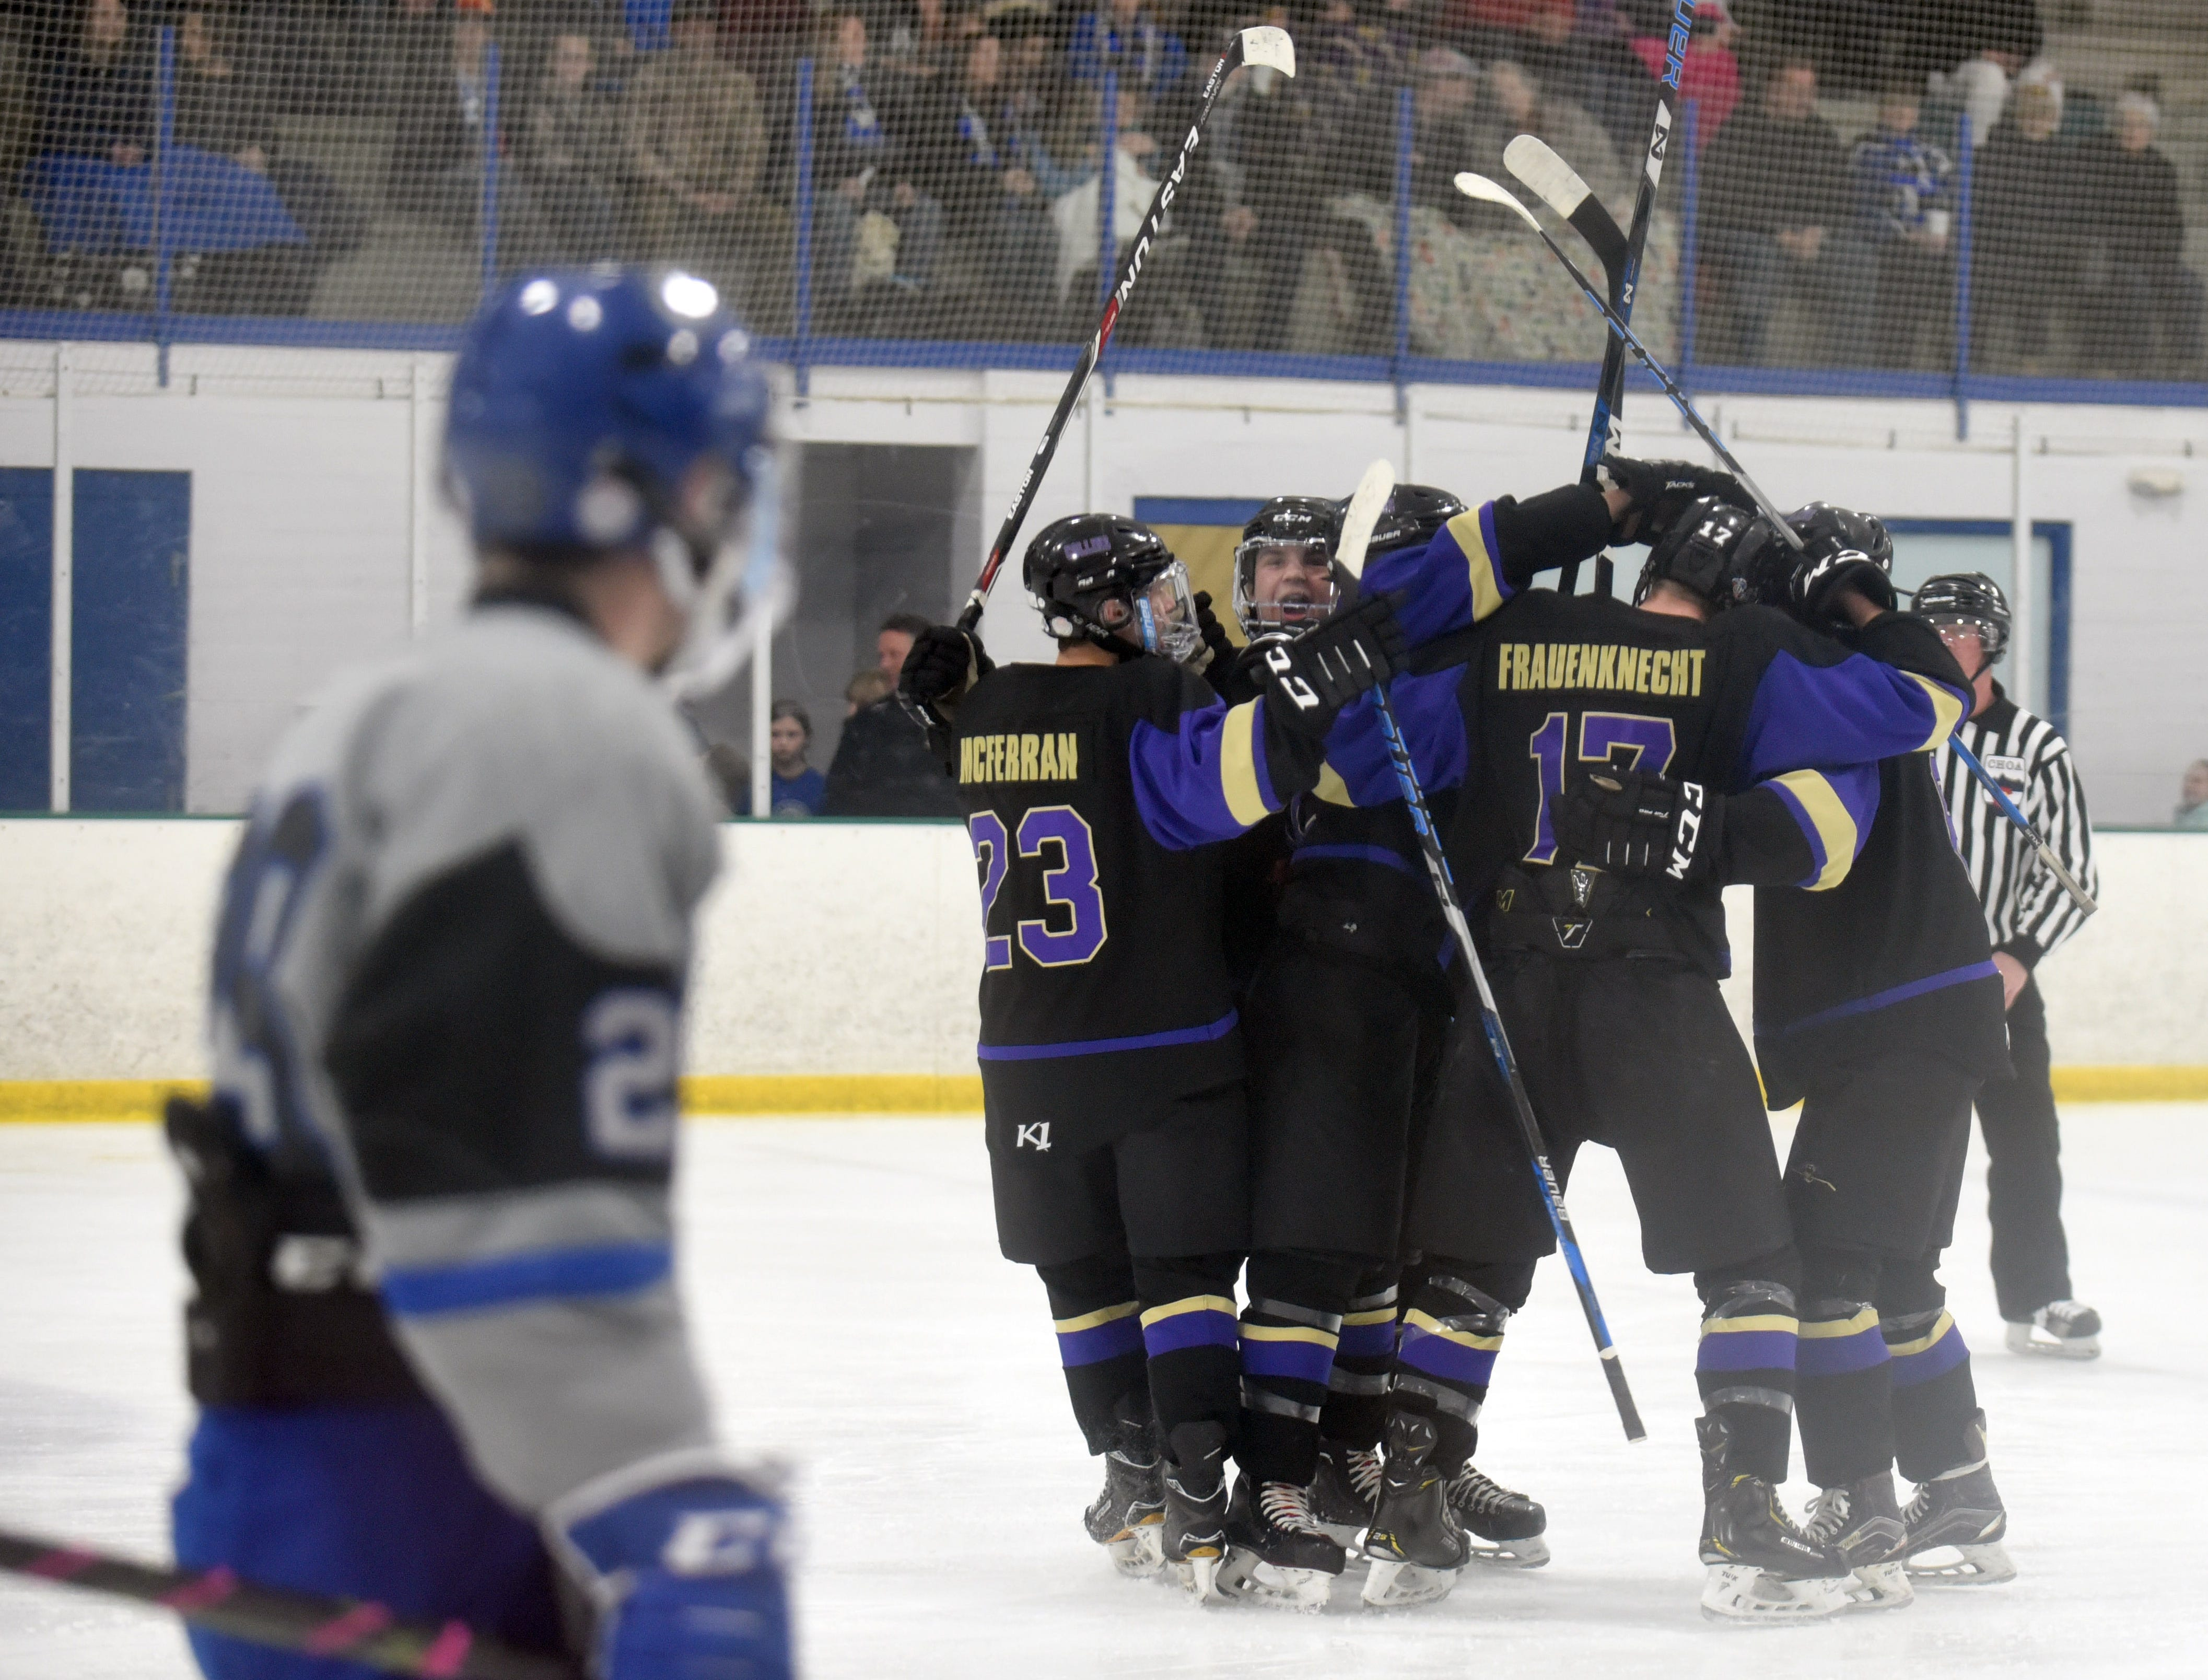 Fort Collins celebrates after their first goal of the game on Saturday, Feb 2, at NoCo Ice Center, 7900 N Fairgrounds Ave, in Fort Collins.